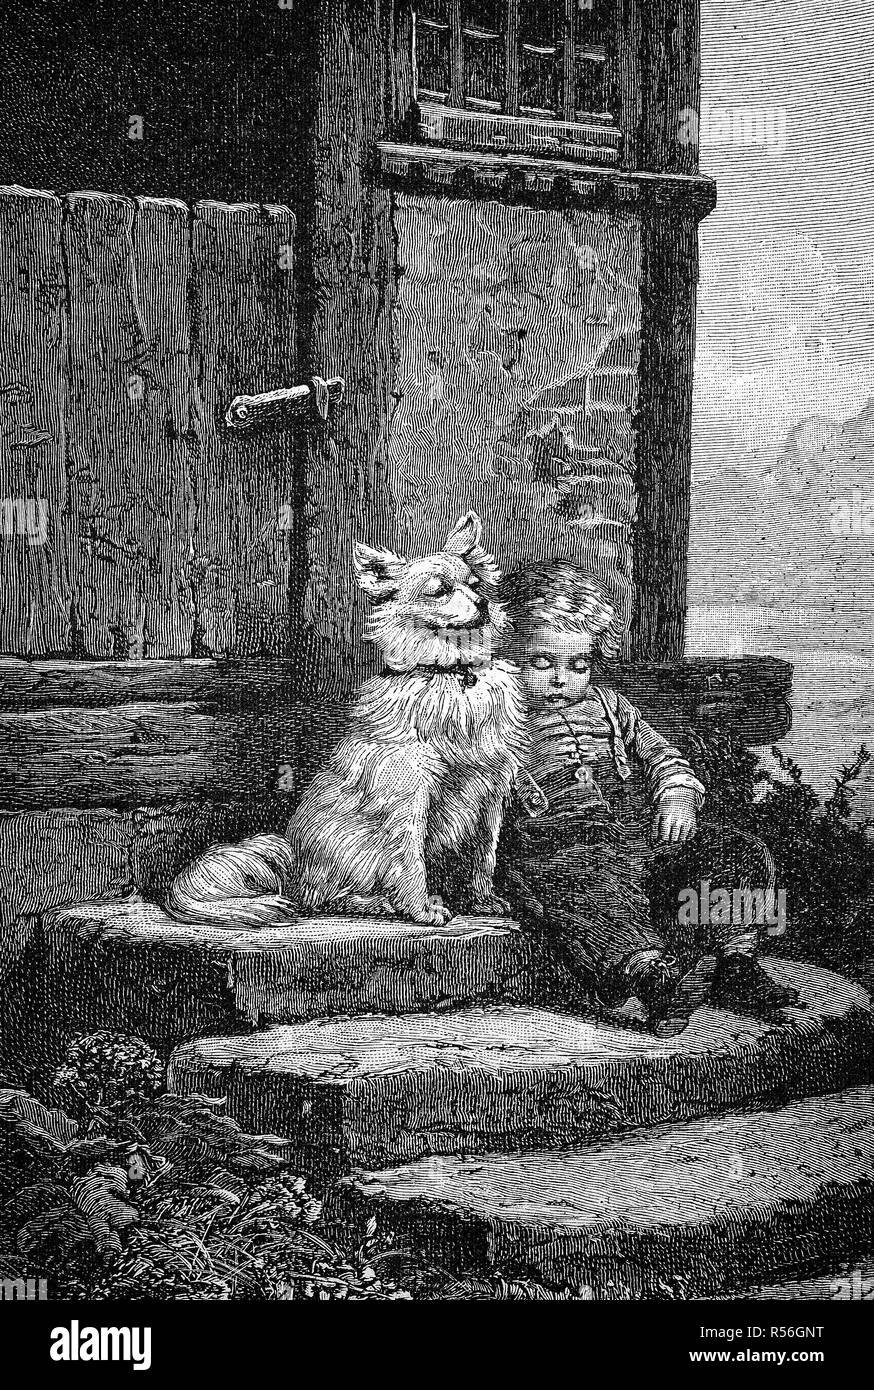 The guardian, dog is guarding the little boy who has fallen asleep on the stairs, 1880, woodcut, Germany - Stock Image